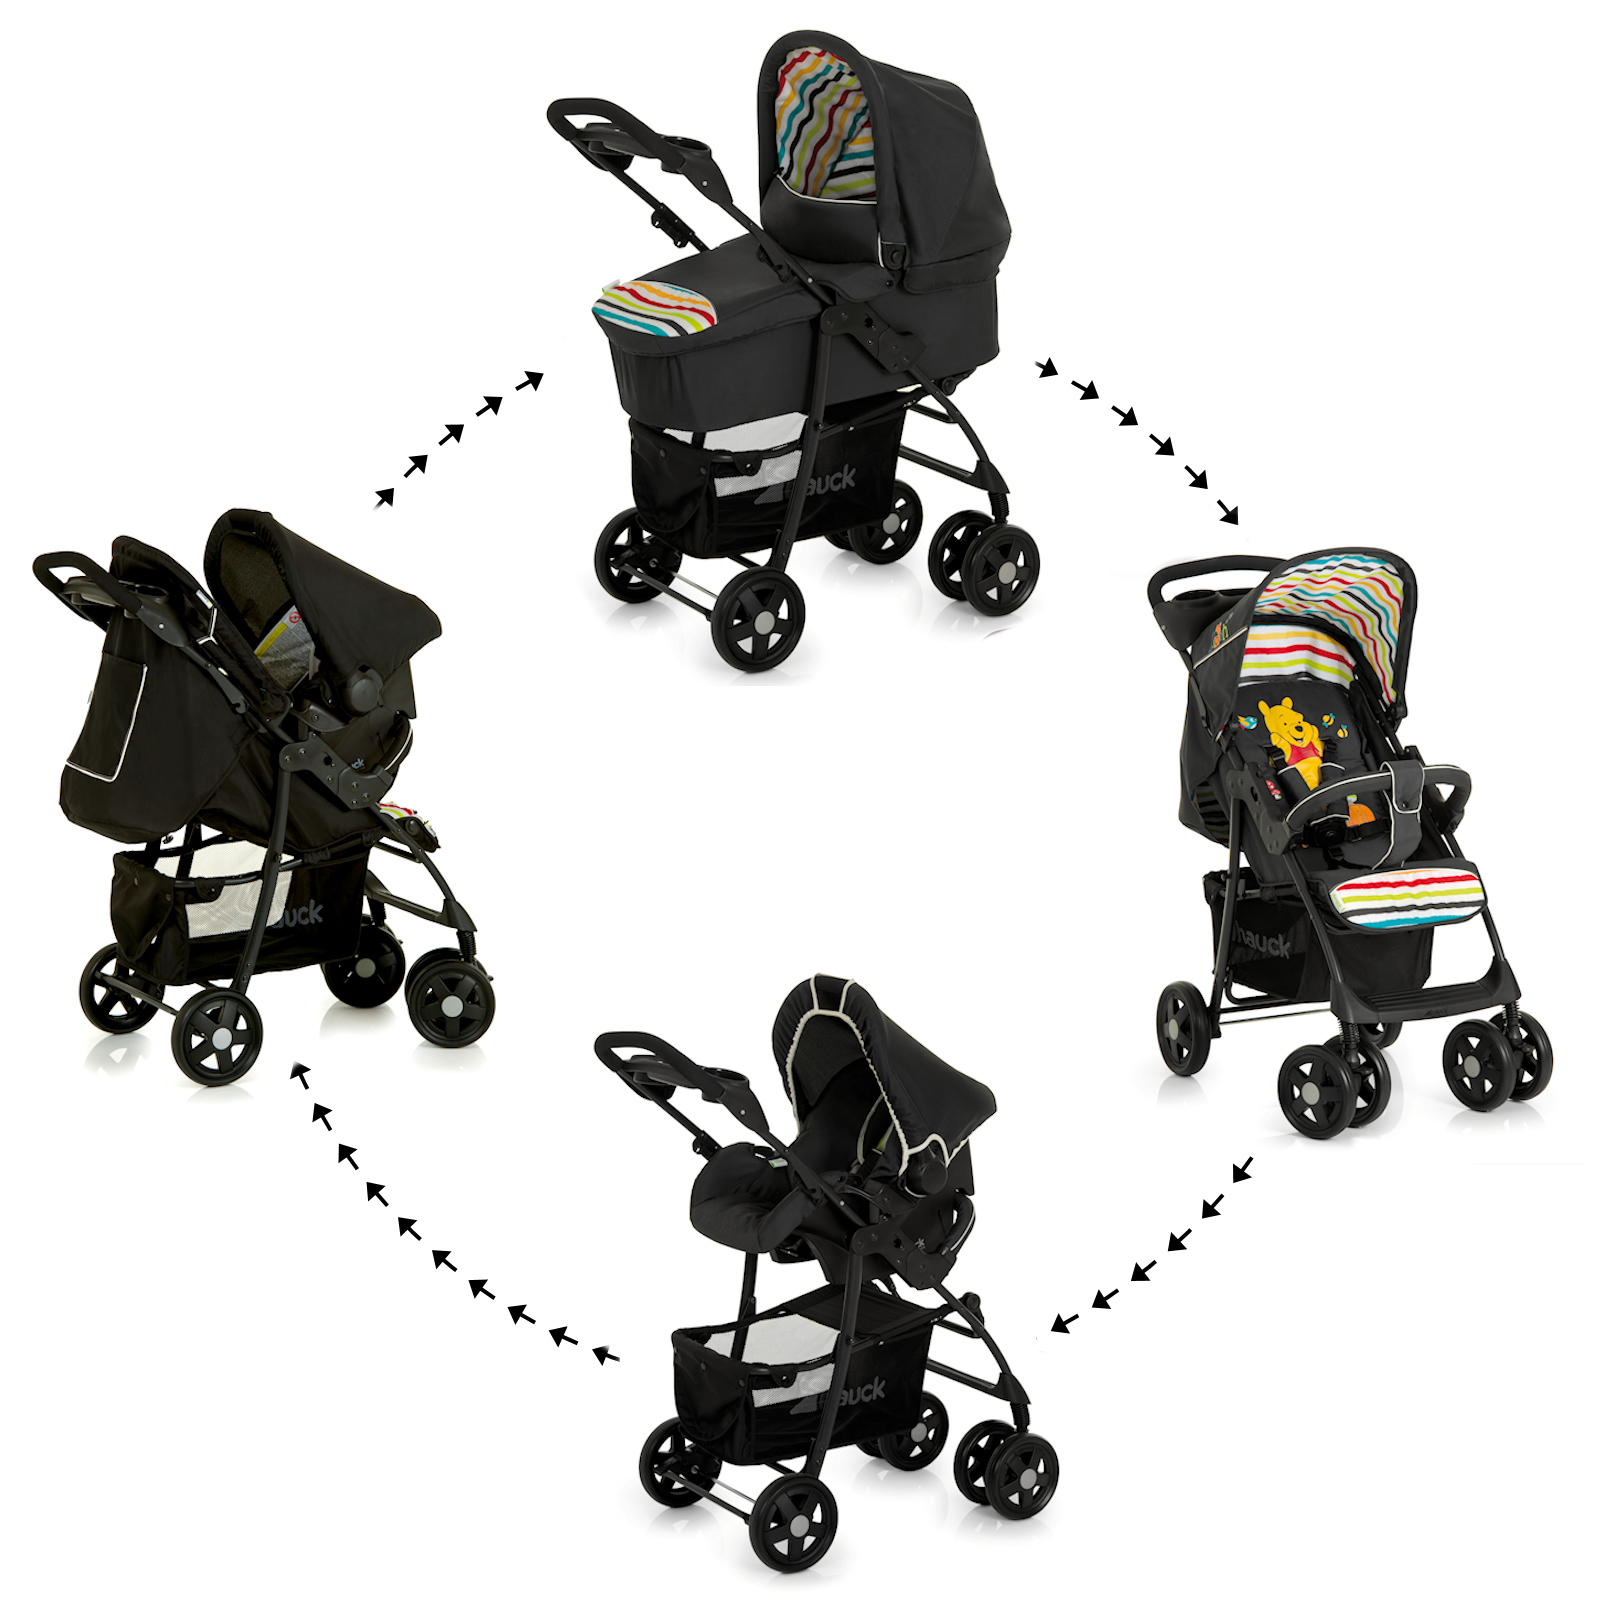 new hauck disney pooh tidy time shopper trio set travel system from birth ebay. Black Bedroom Furniture Sets. Home Design Ideas